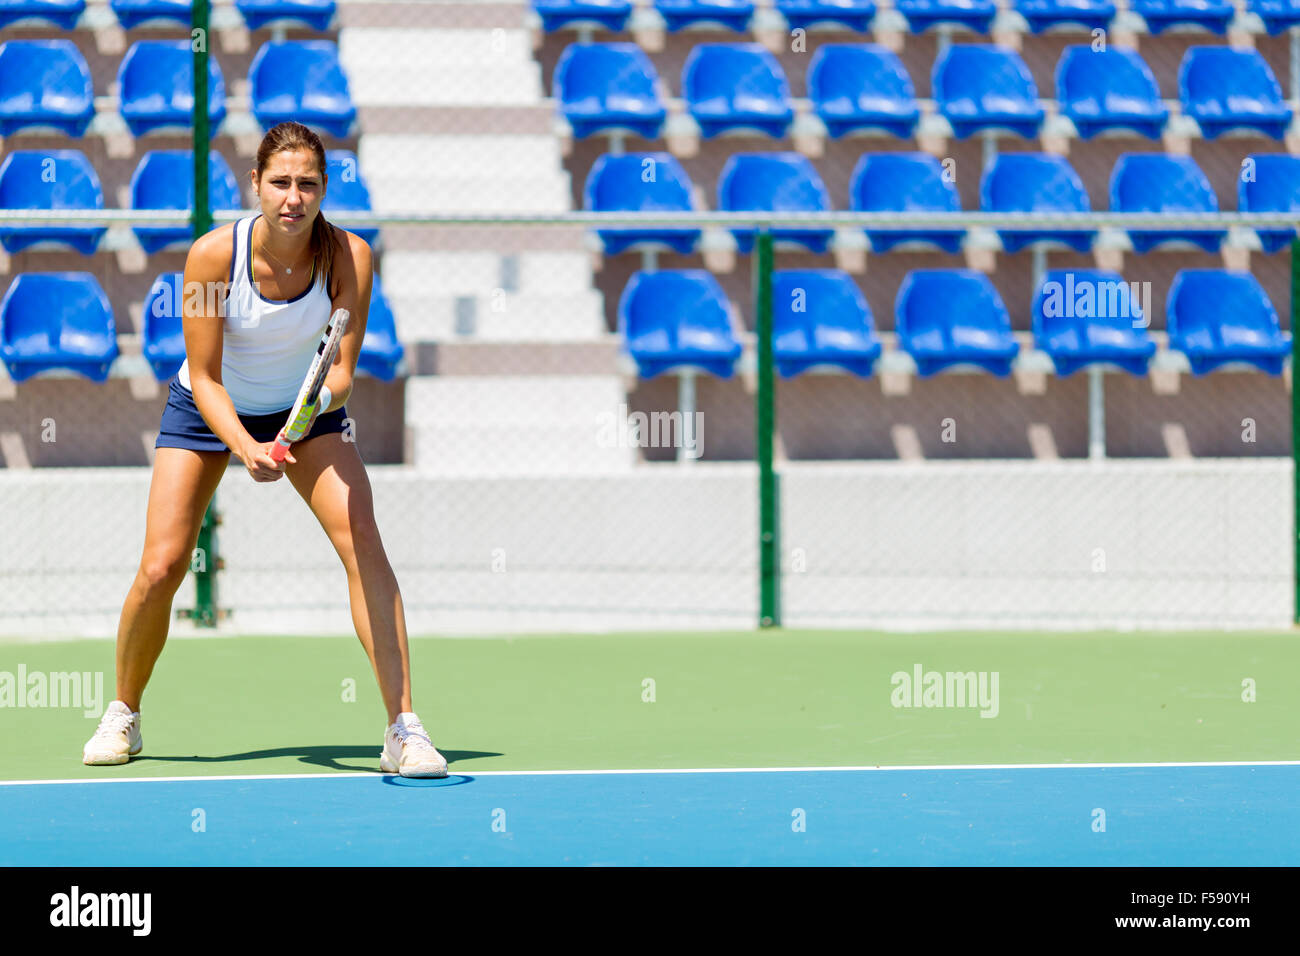 Female tennis player in a receiving service stance - Stock Image